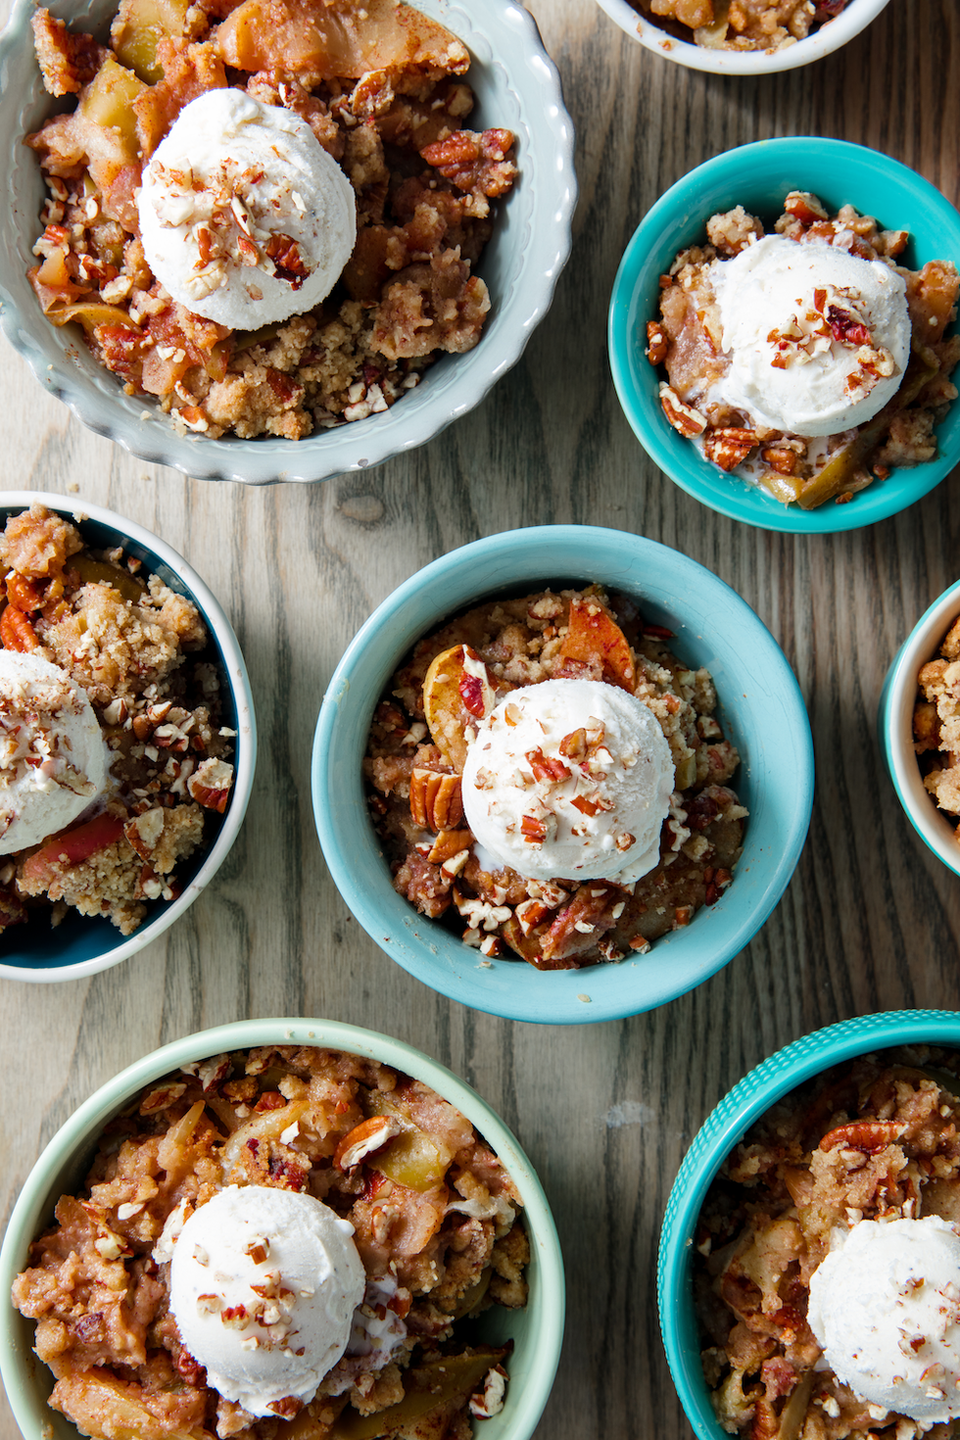 """<p>Delish with or without ice cream.</p><p>Get the recipe from <a href=""""https://www.delish.com/cooking/recipe-ideas/a21581233/easy-apple-crumble-recipe/"""" rel=""""nofollow noopener"""" target=""""_blank"""" data-ylk=""""slk:Delish"""" class=""""link rapid-noclick-resp"""">Delish</a>.</p>"""